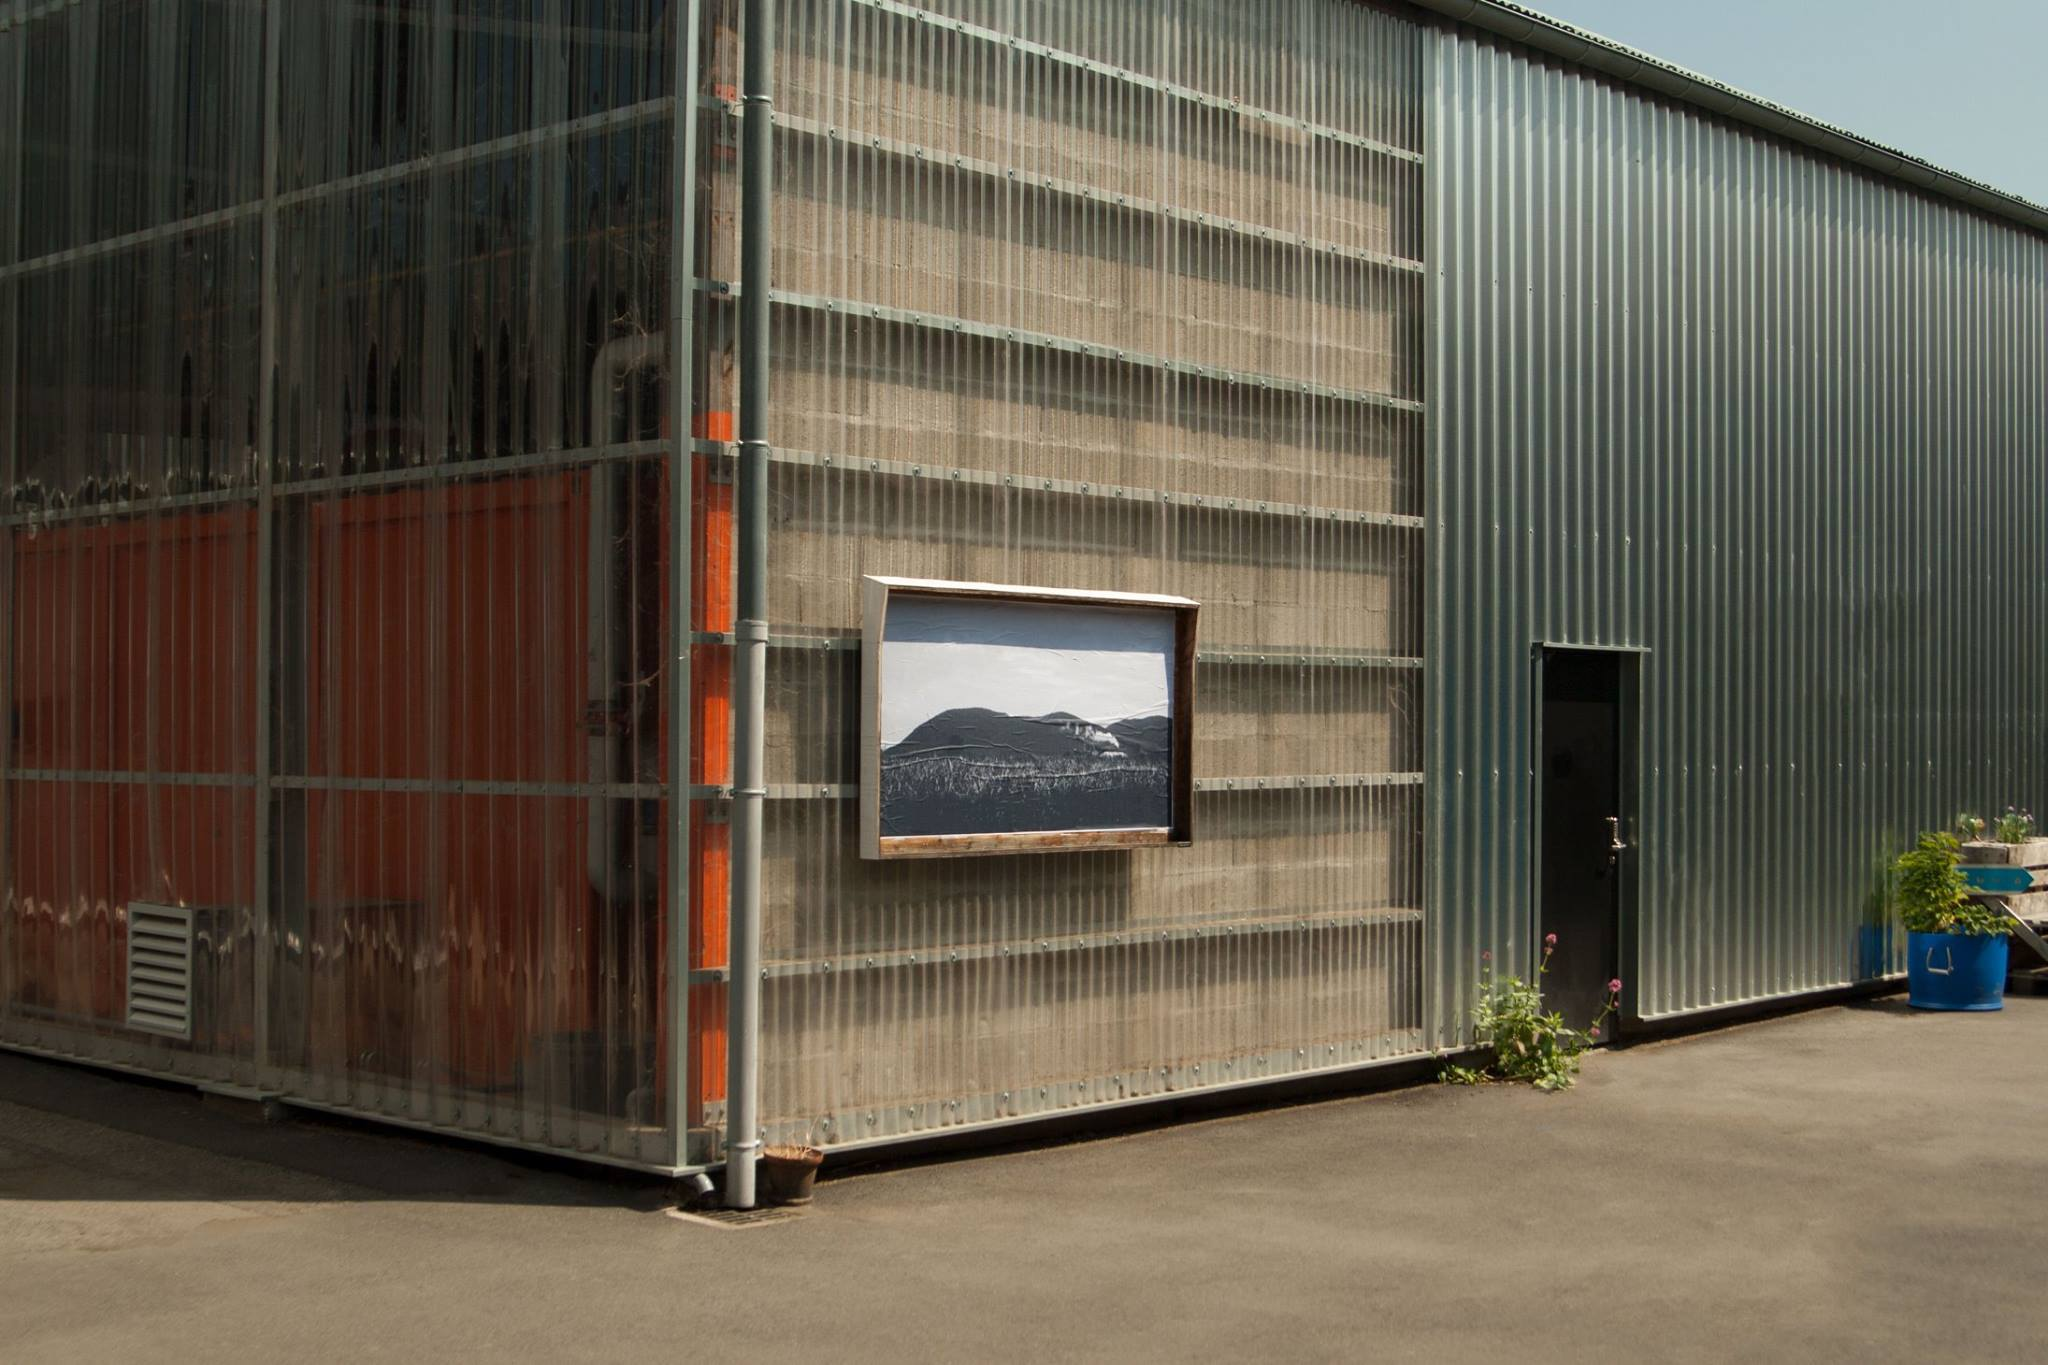 Urban Space 16 200 cm² display panel presenting visuals